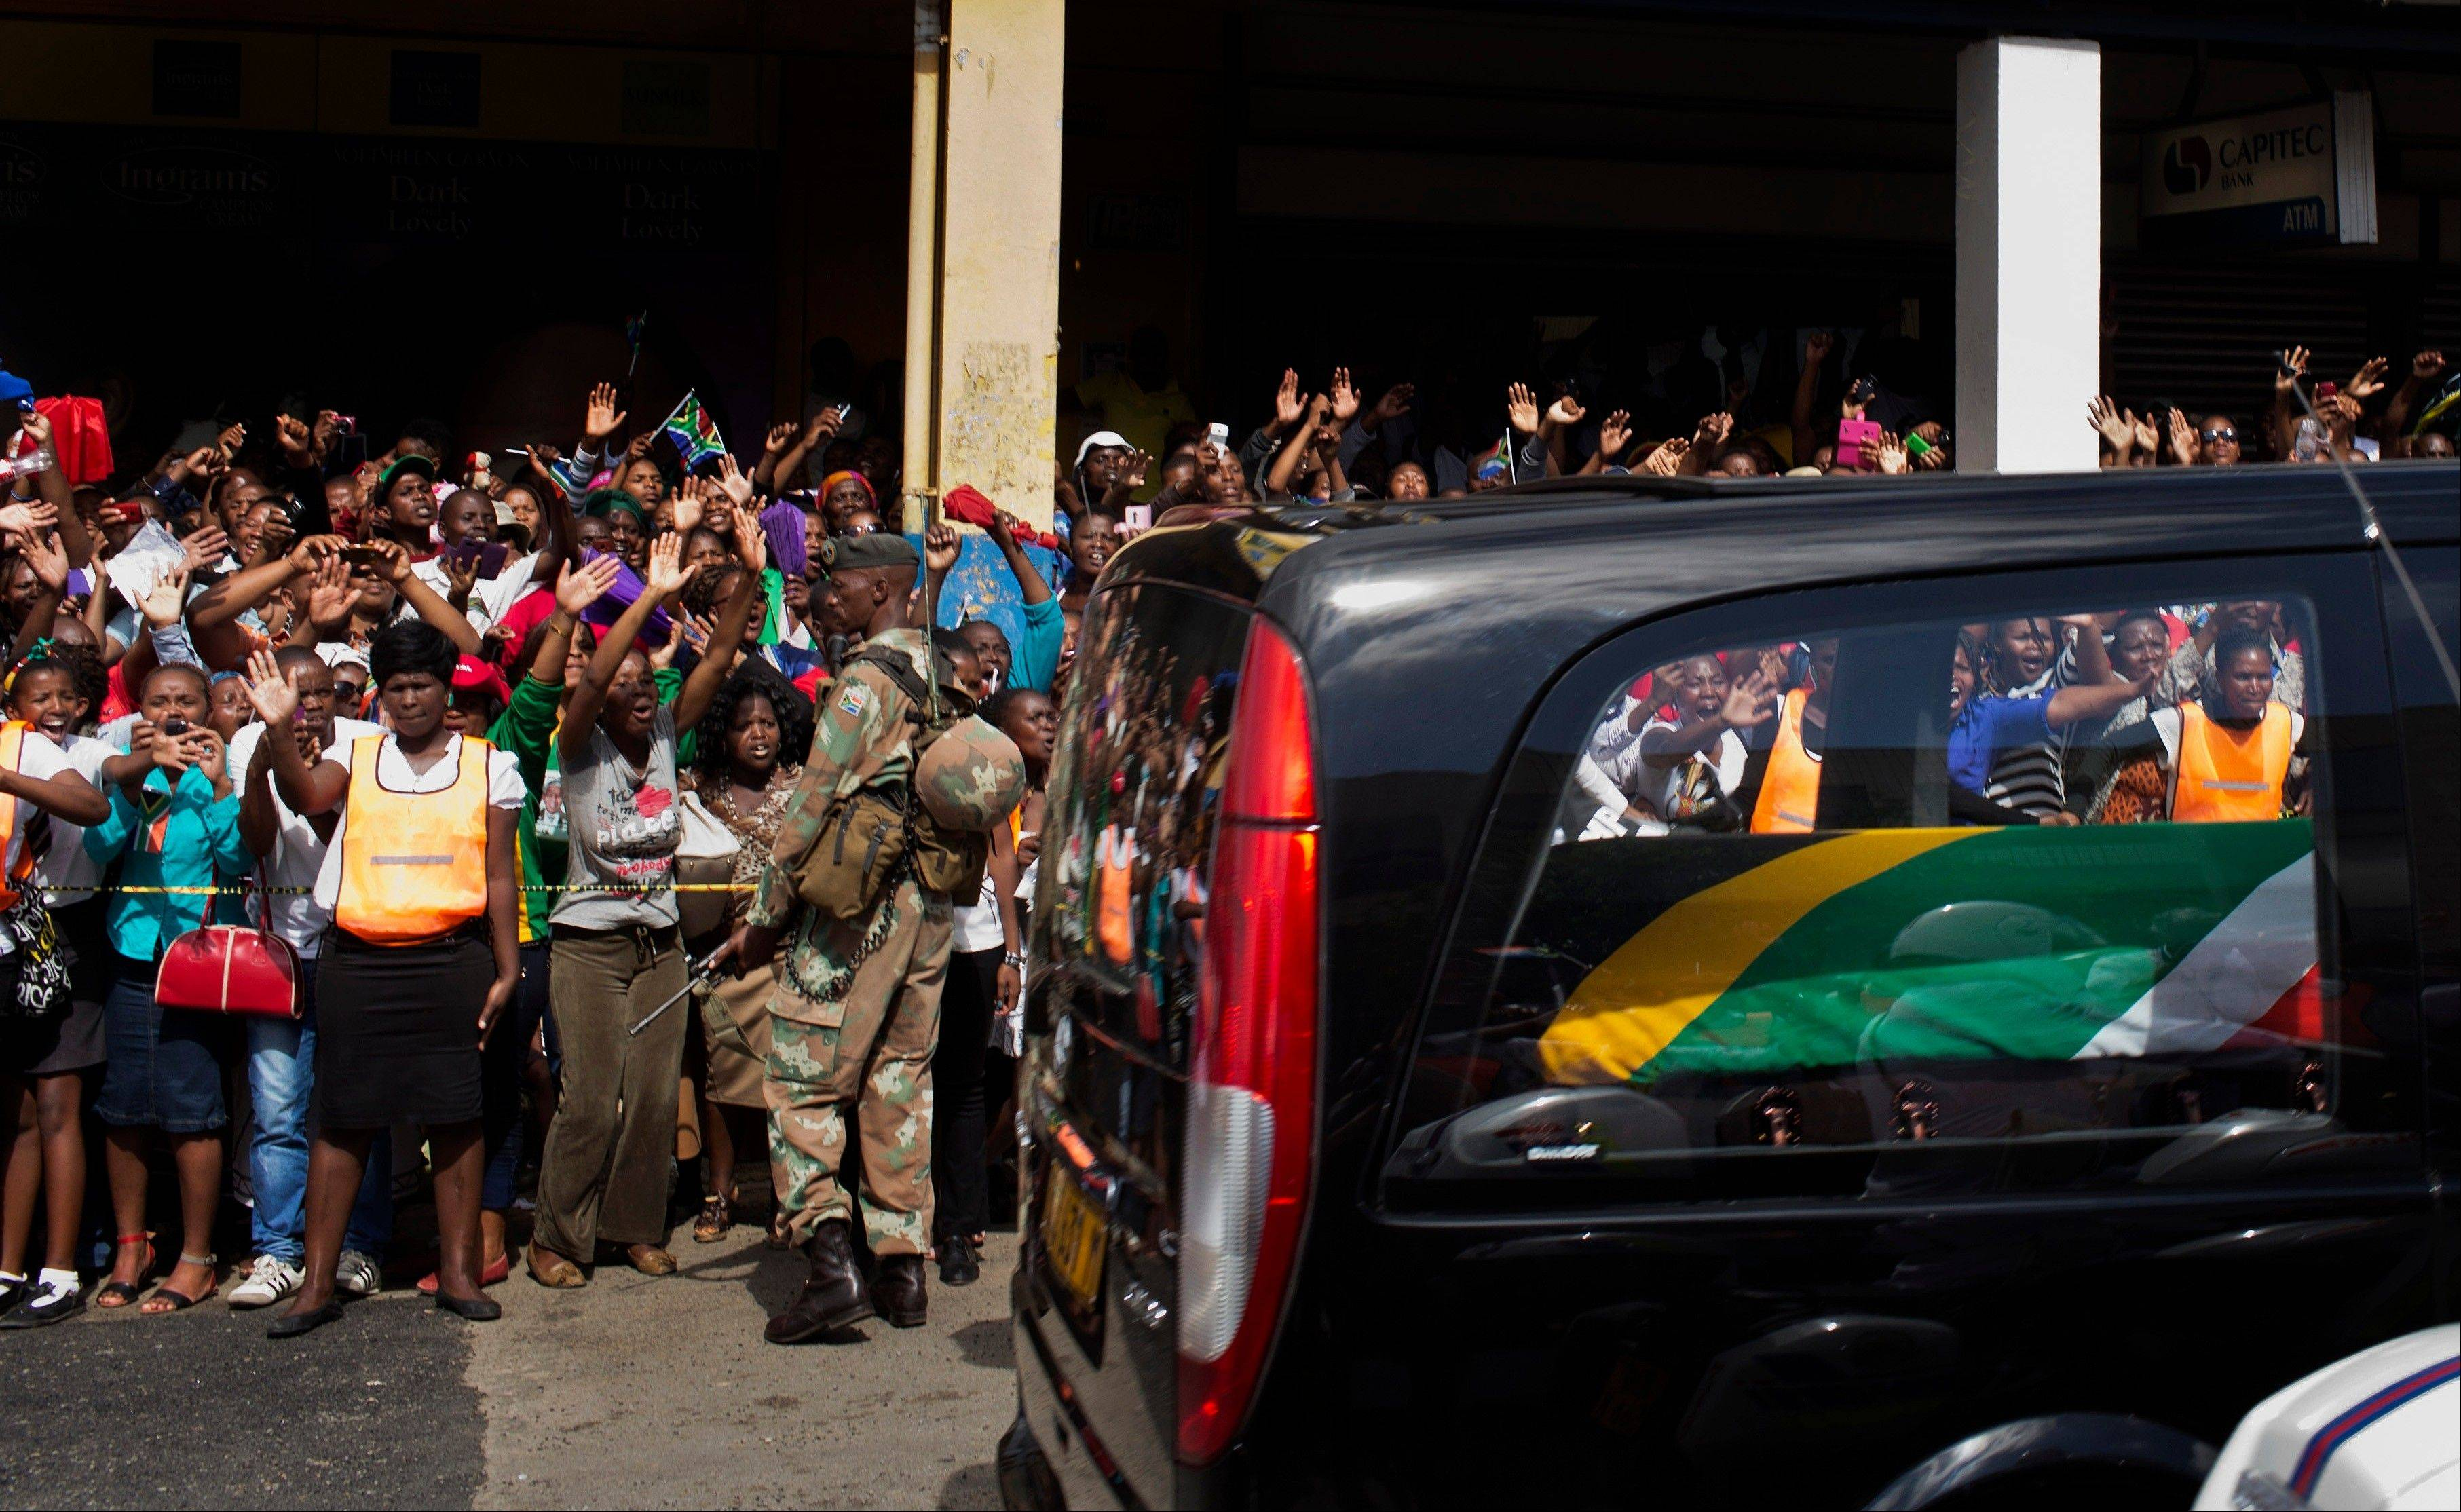 The motorcade transporting the body of Nelson Mandela, in black hearse, passes through crowds of mourners gathered in the town of on its way to Qunu, South Africa Saturday, Dec. 14, 2013.